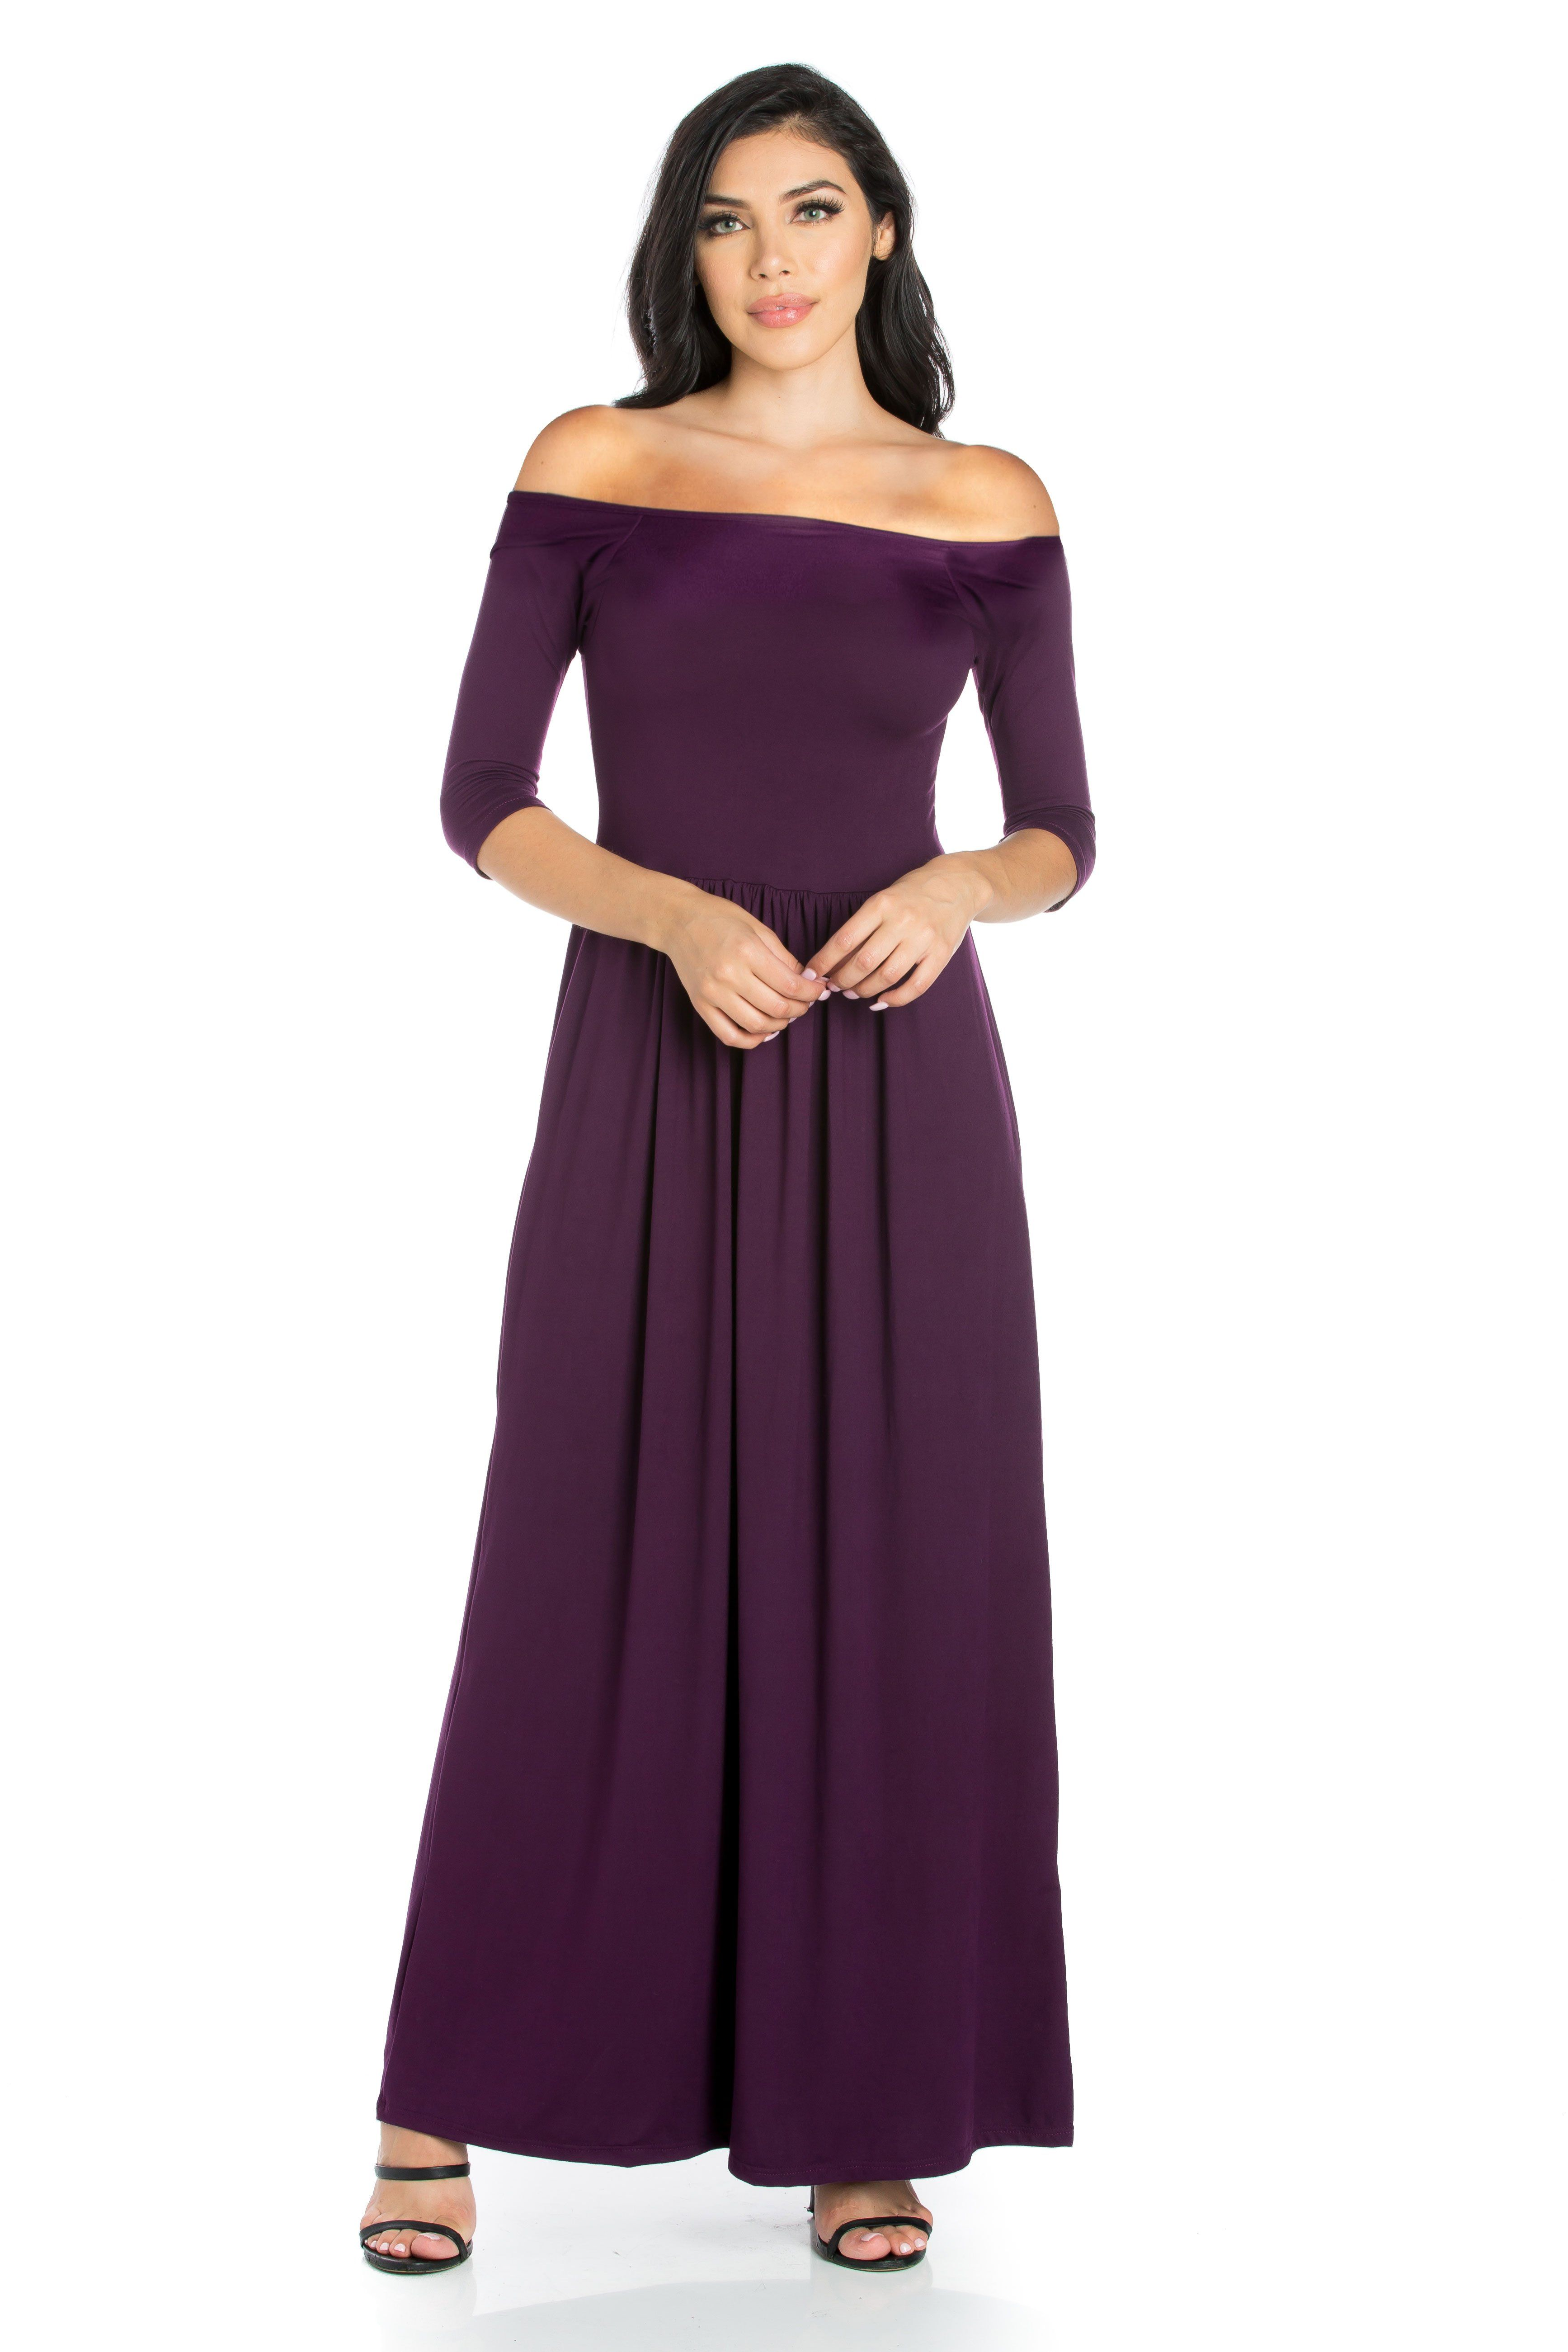 74666418a77 ... Dresses by 247 Comfort Apparel. Off The Shoulder Maxi Dress For Women  Off The Shoulder Maxi Dress The beautiful style features